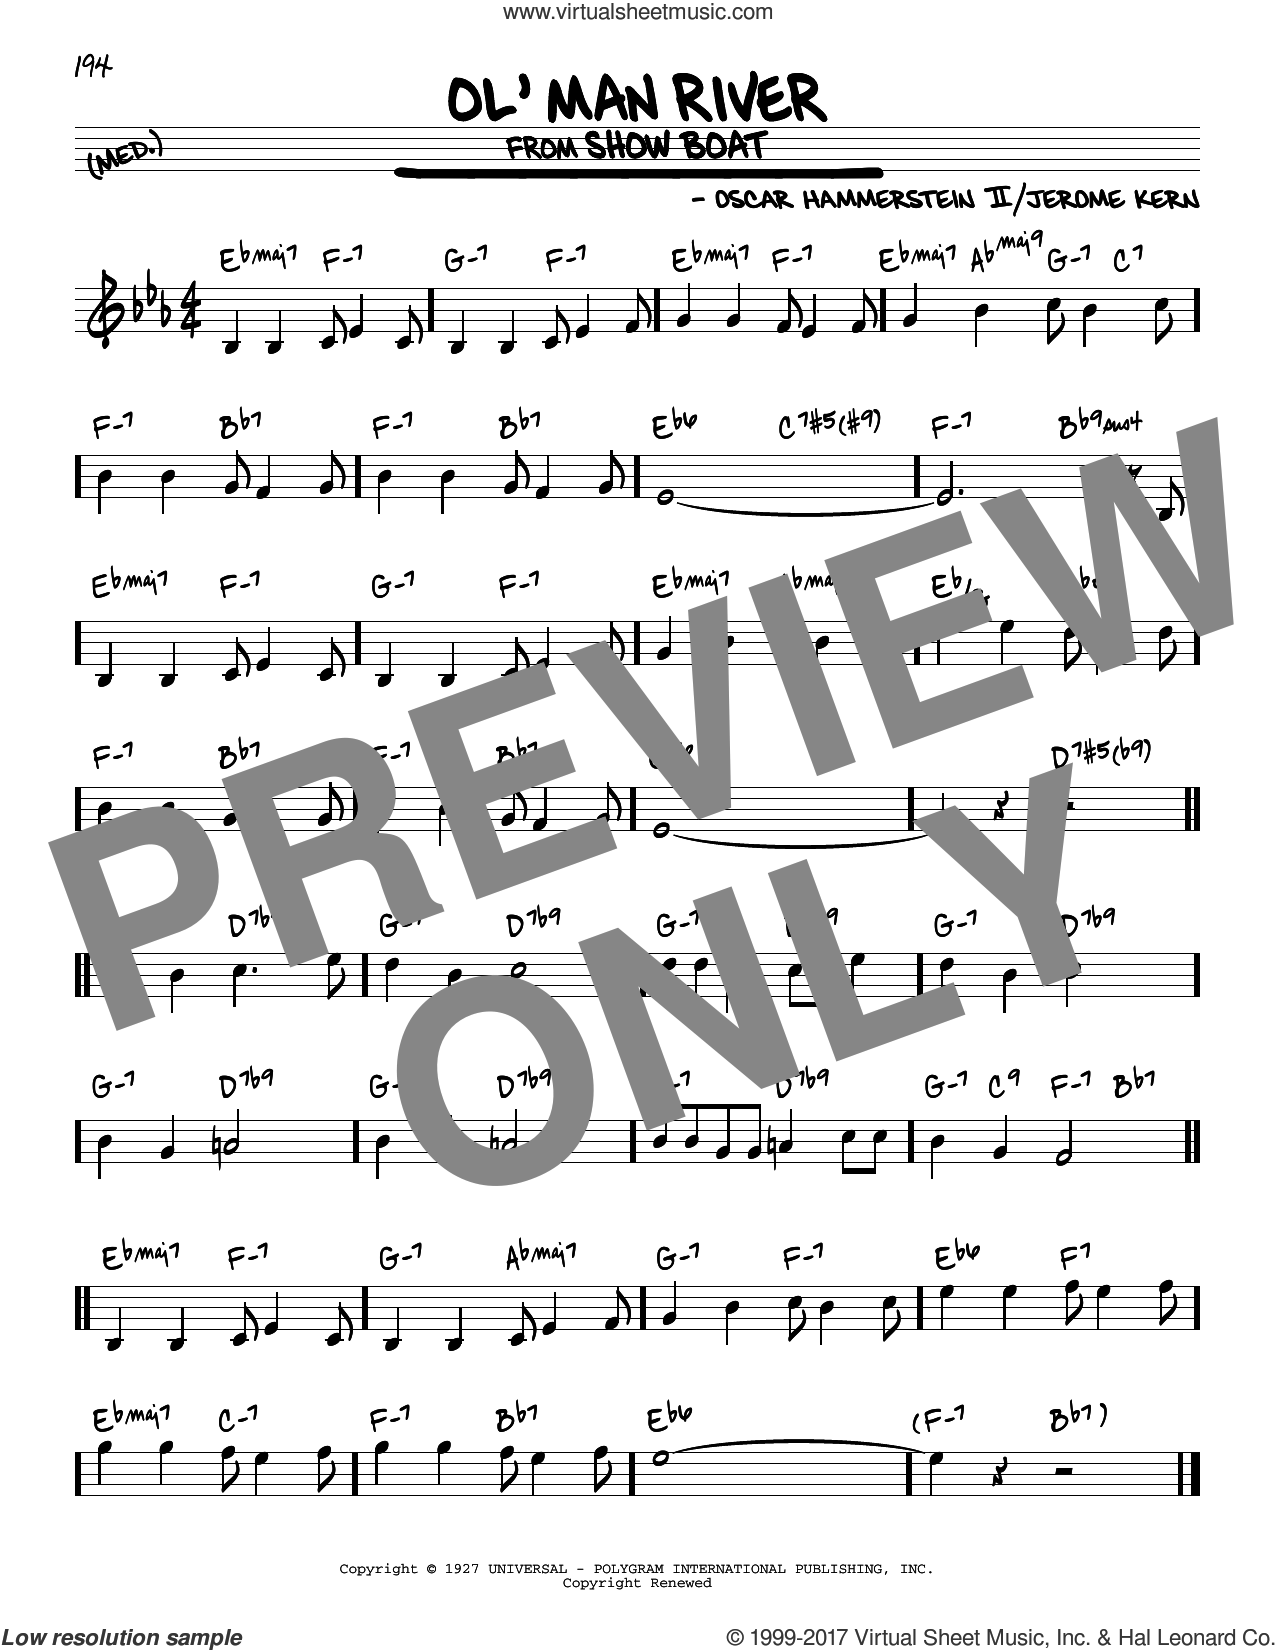 Ol' Man River sheet music for voice and other instruments (real book) by Oscar II Hammerstein and Jerome Kern, intermediate skill level